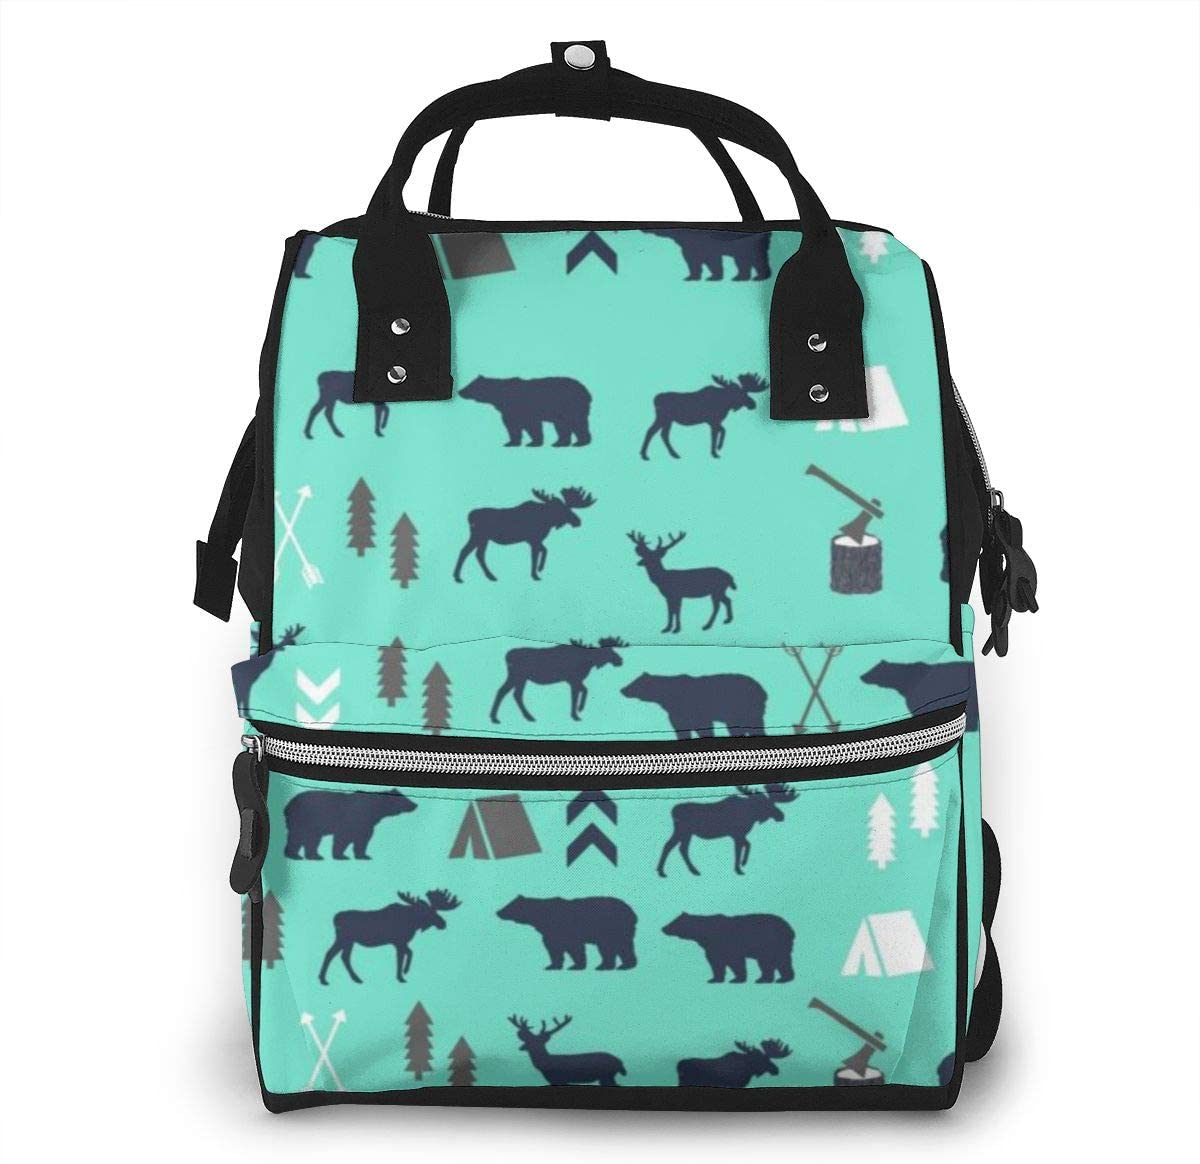 Diaper Bag Backpack,Multi-Function Waterproof Maternity Baby Nursing Nappy Back Pack for Boy/Girl on Travel with Stroller Straps,Mint Grey Navy Blue Bear Moose Forest Arrow Pattern